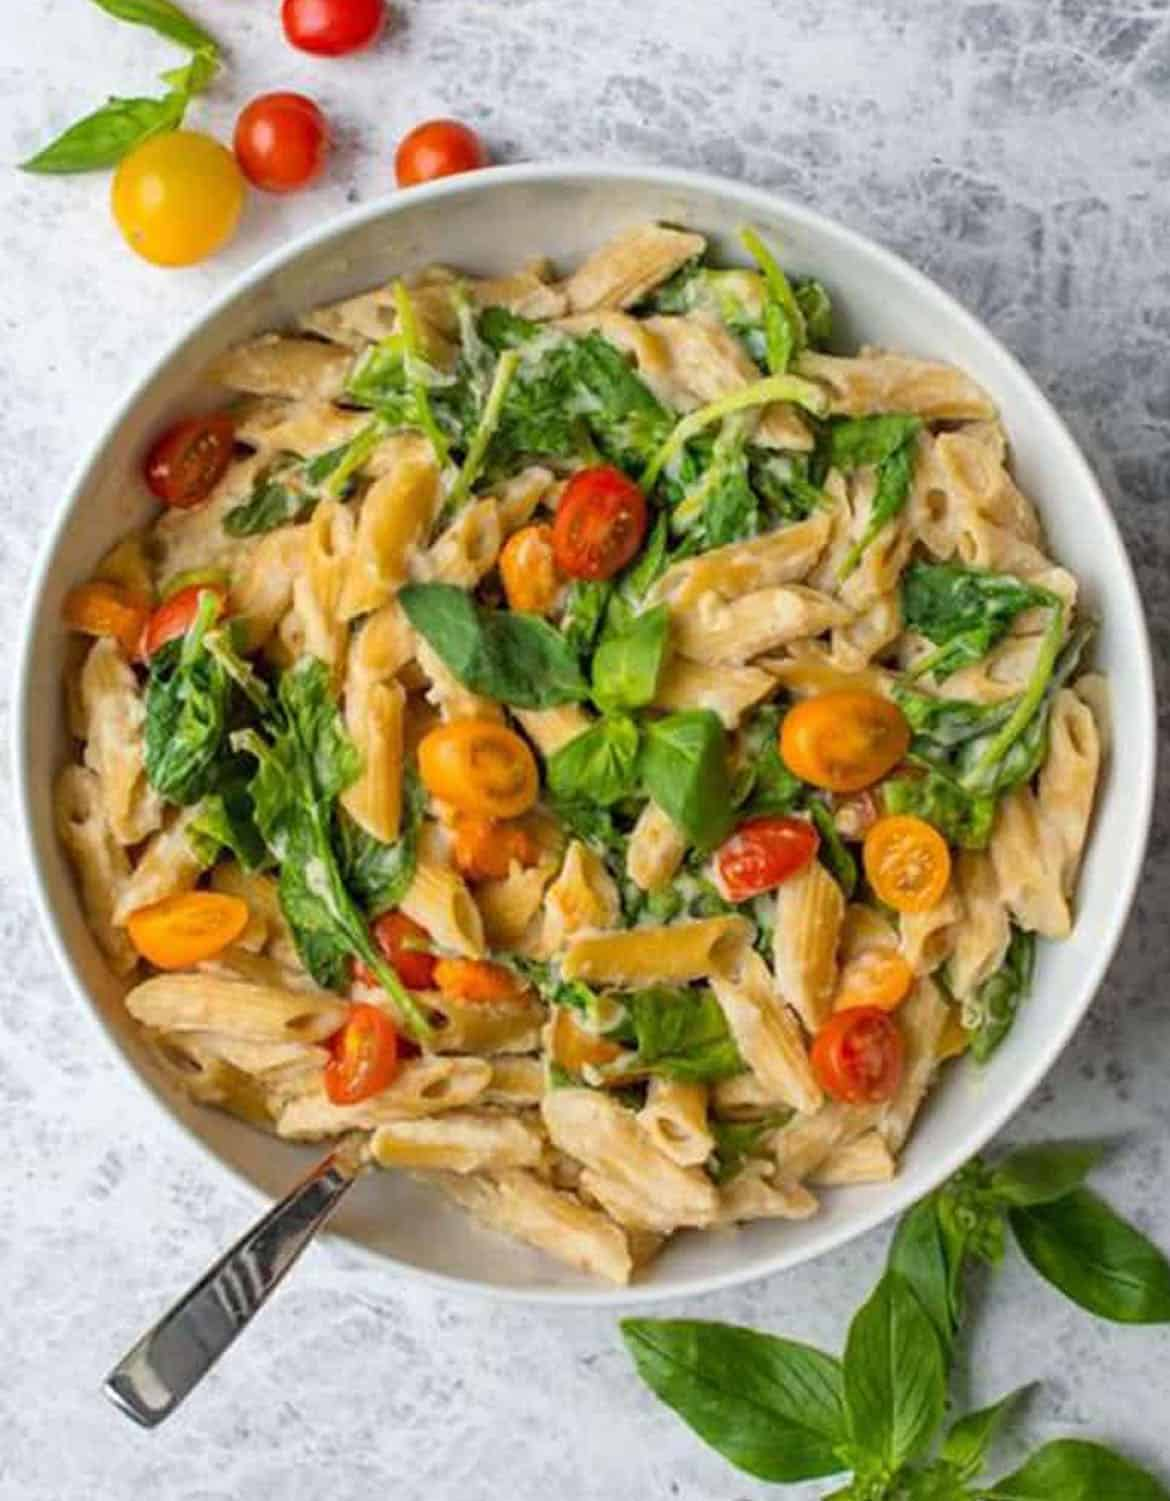 Penne with spinach, cherry tomatoes and creamy sauce in a large white bowl - Lauren Caris Cooks